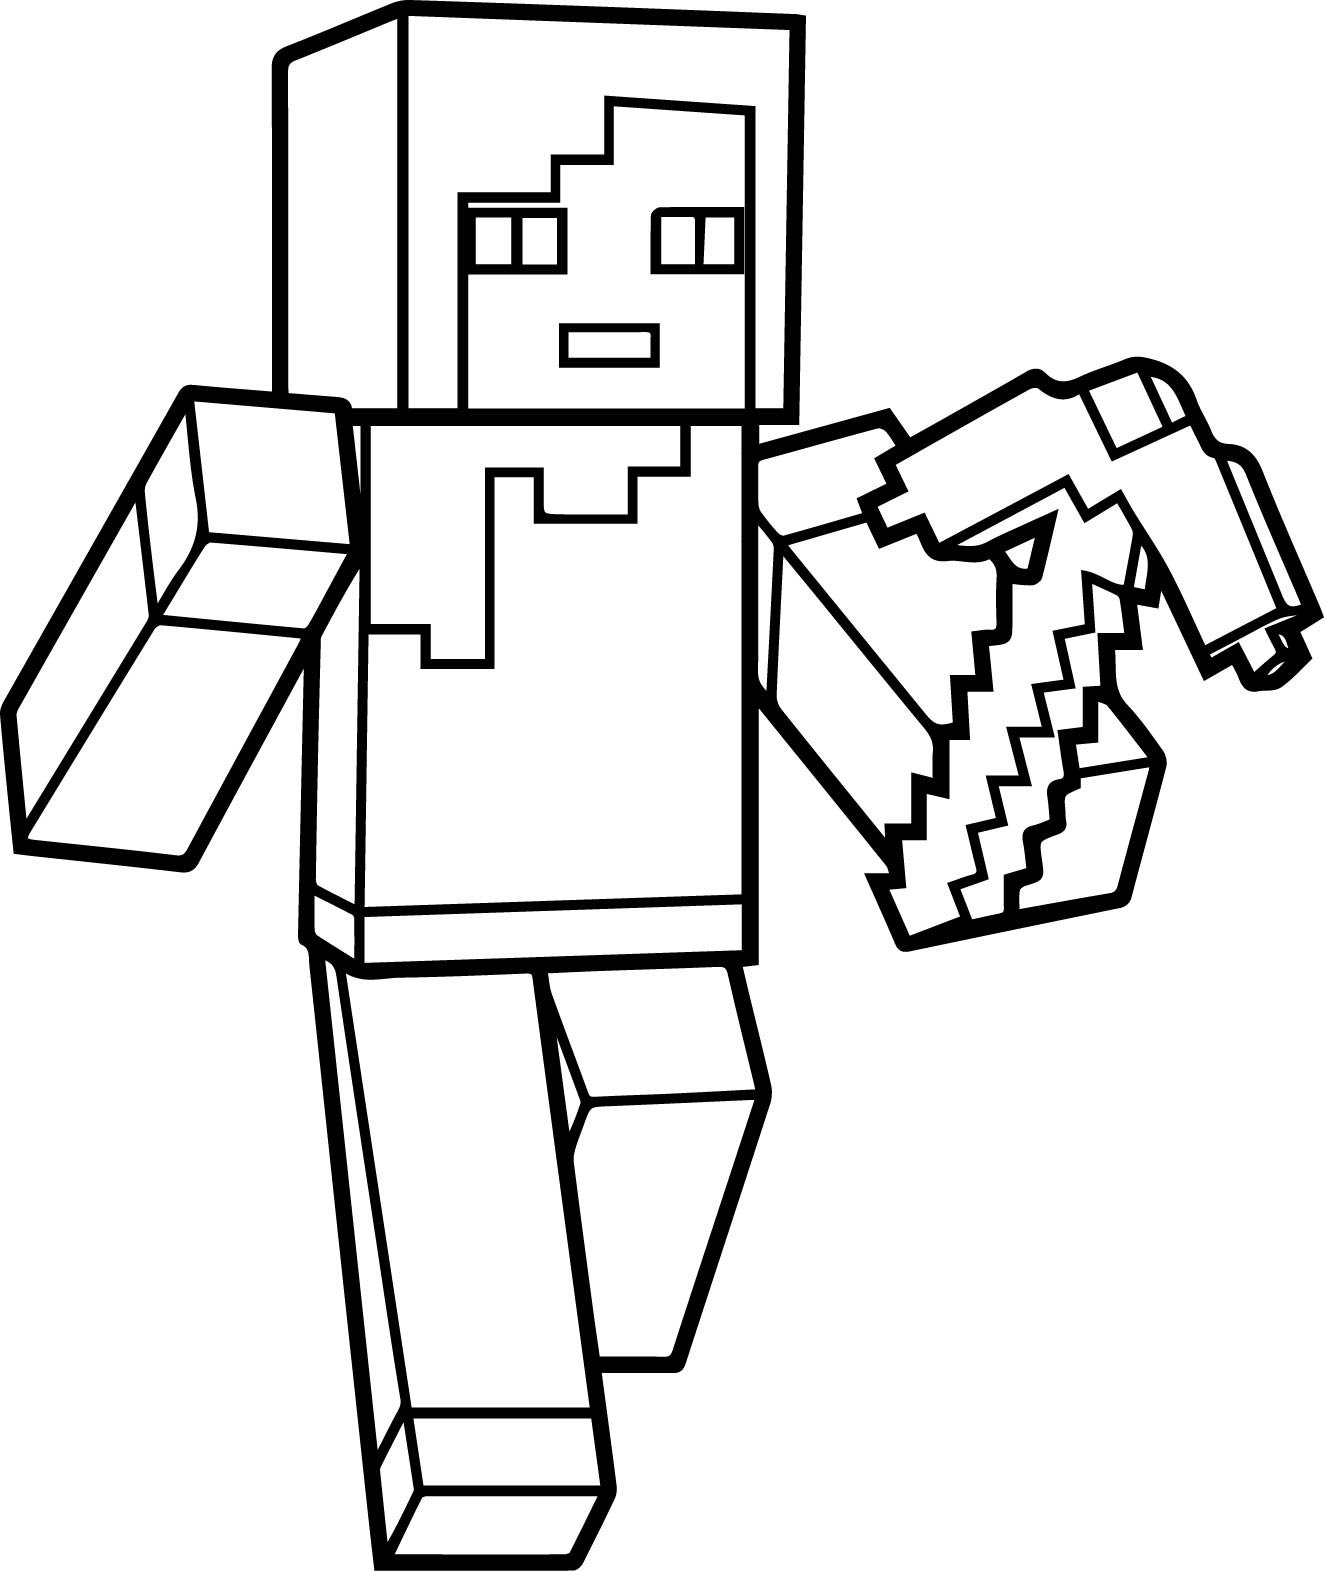 creeper coloring pages minecraft mutant creeper coloring pages at getdrawings coloring pages creeper